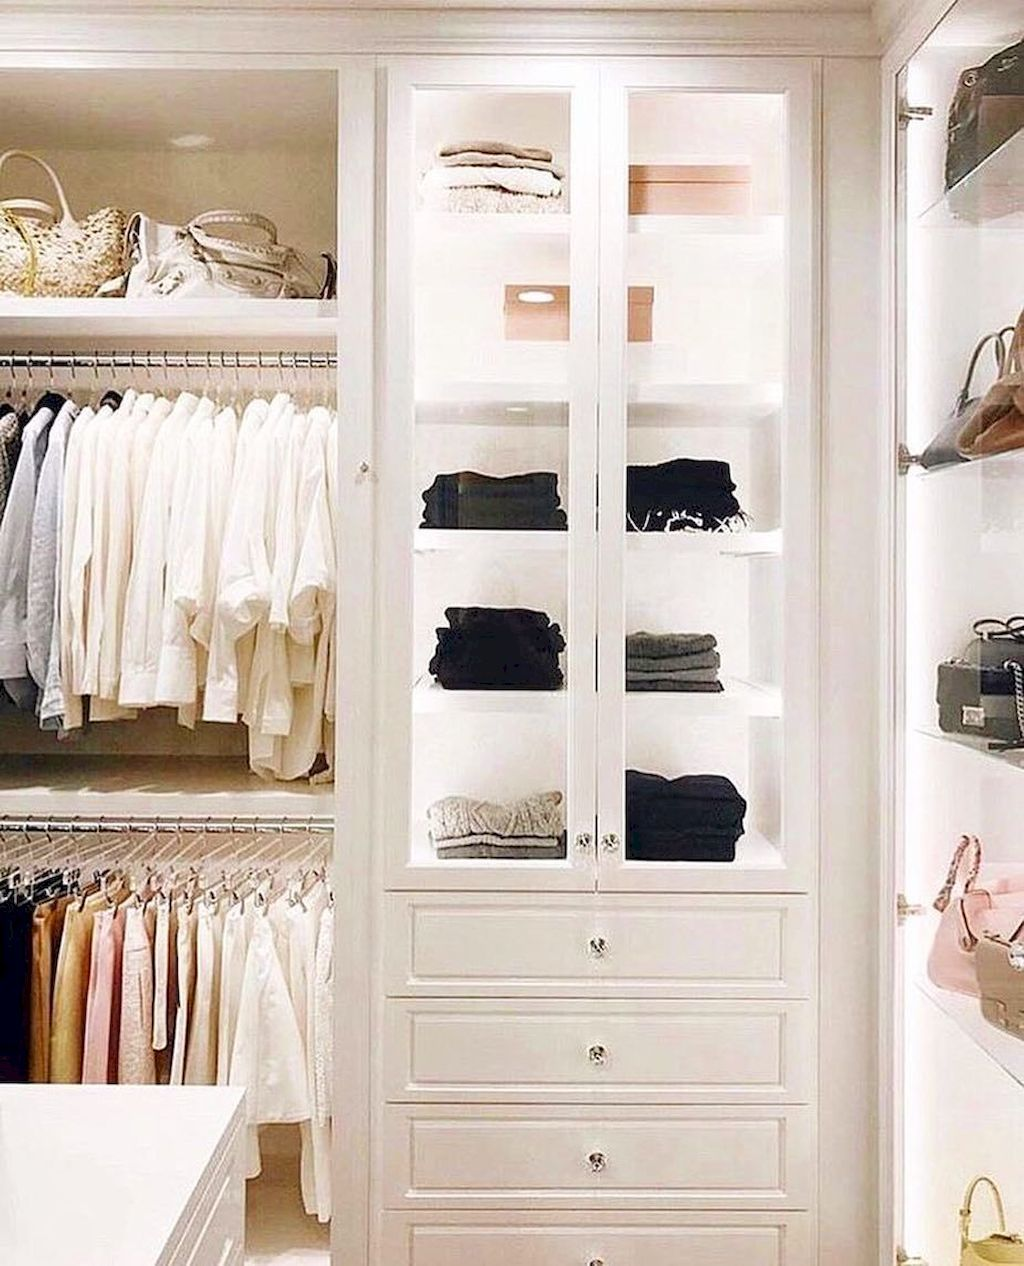 Diy Fitted Wardrobes Save House And Add Type In 2020 Bedroom Closet Design Walk In Closet Design Wardrobe Room